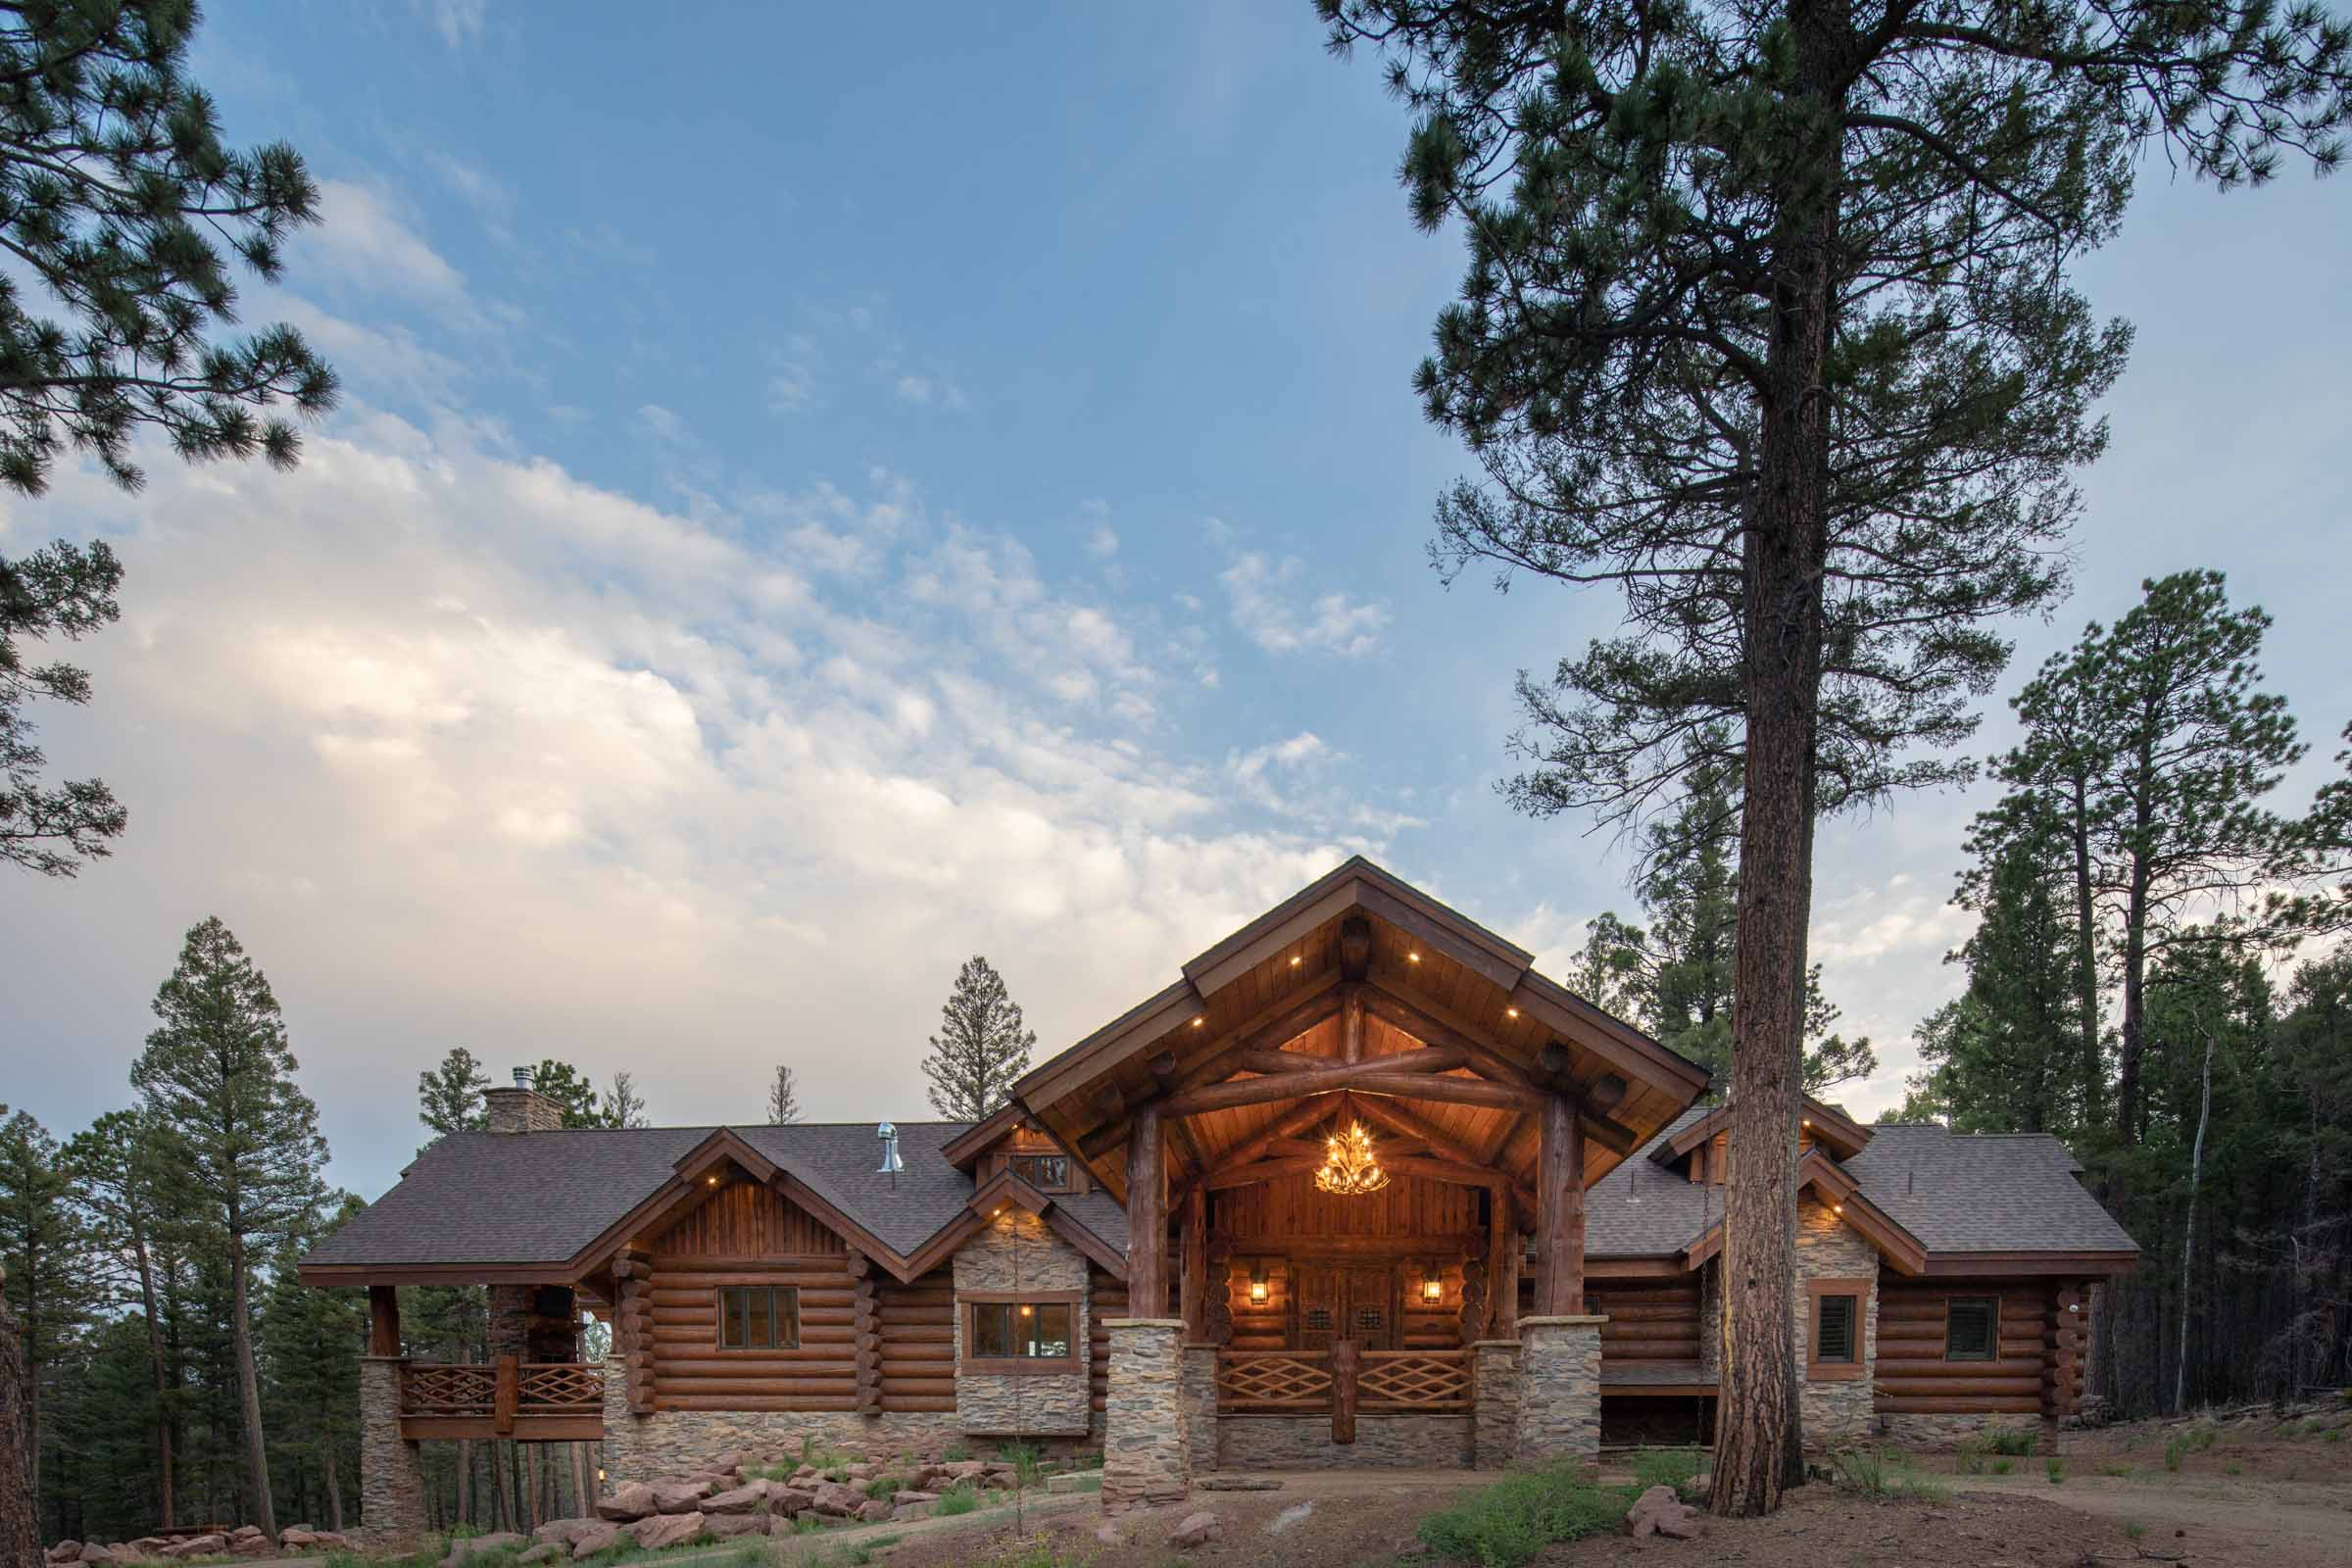 Luxury log cabin angel fire new mexico-8